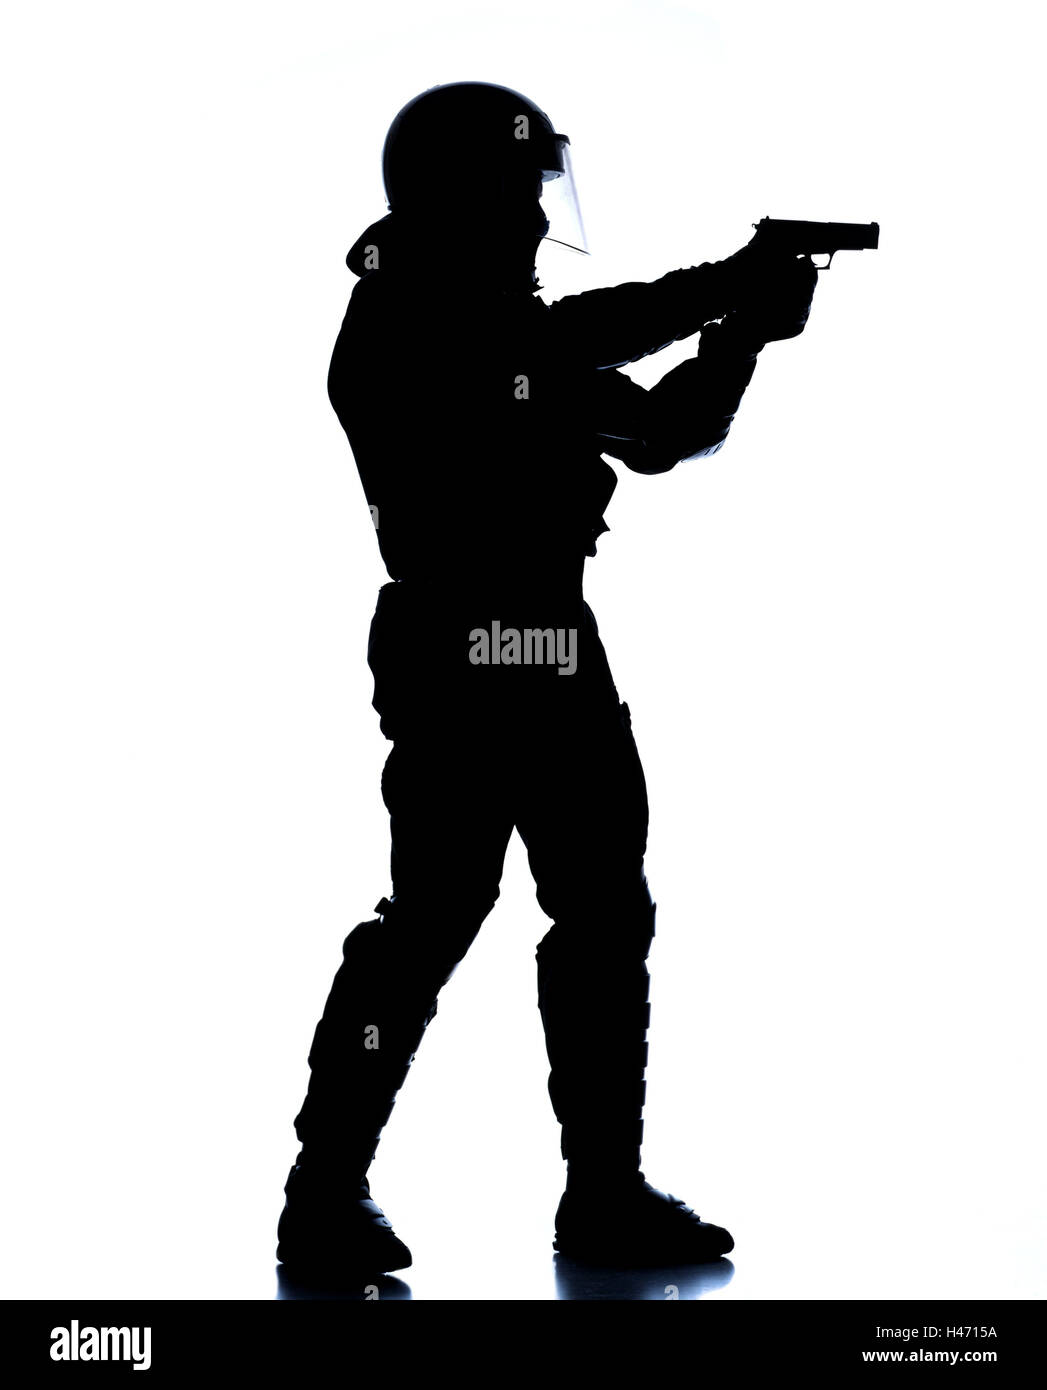 Policeman, protective clothing, stand, gun, shooting practise, aim, shoot silhouette, police, occupation, man, official, - Stock Image